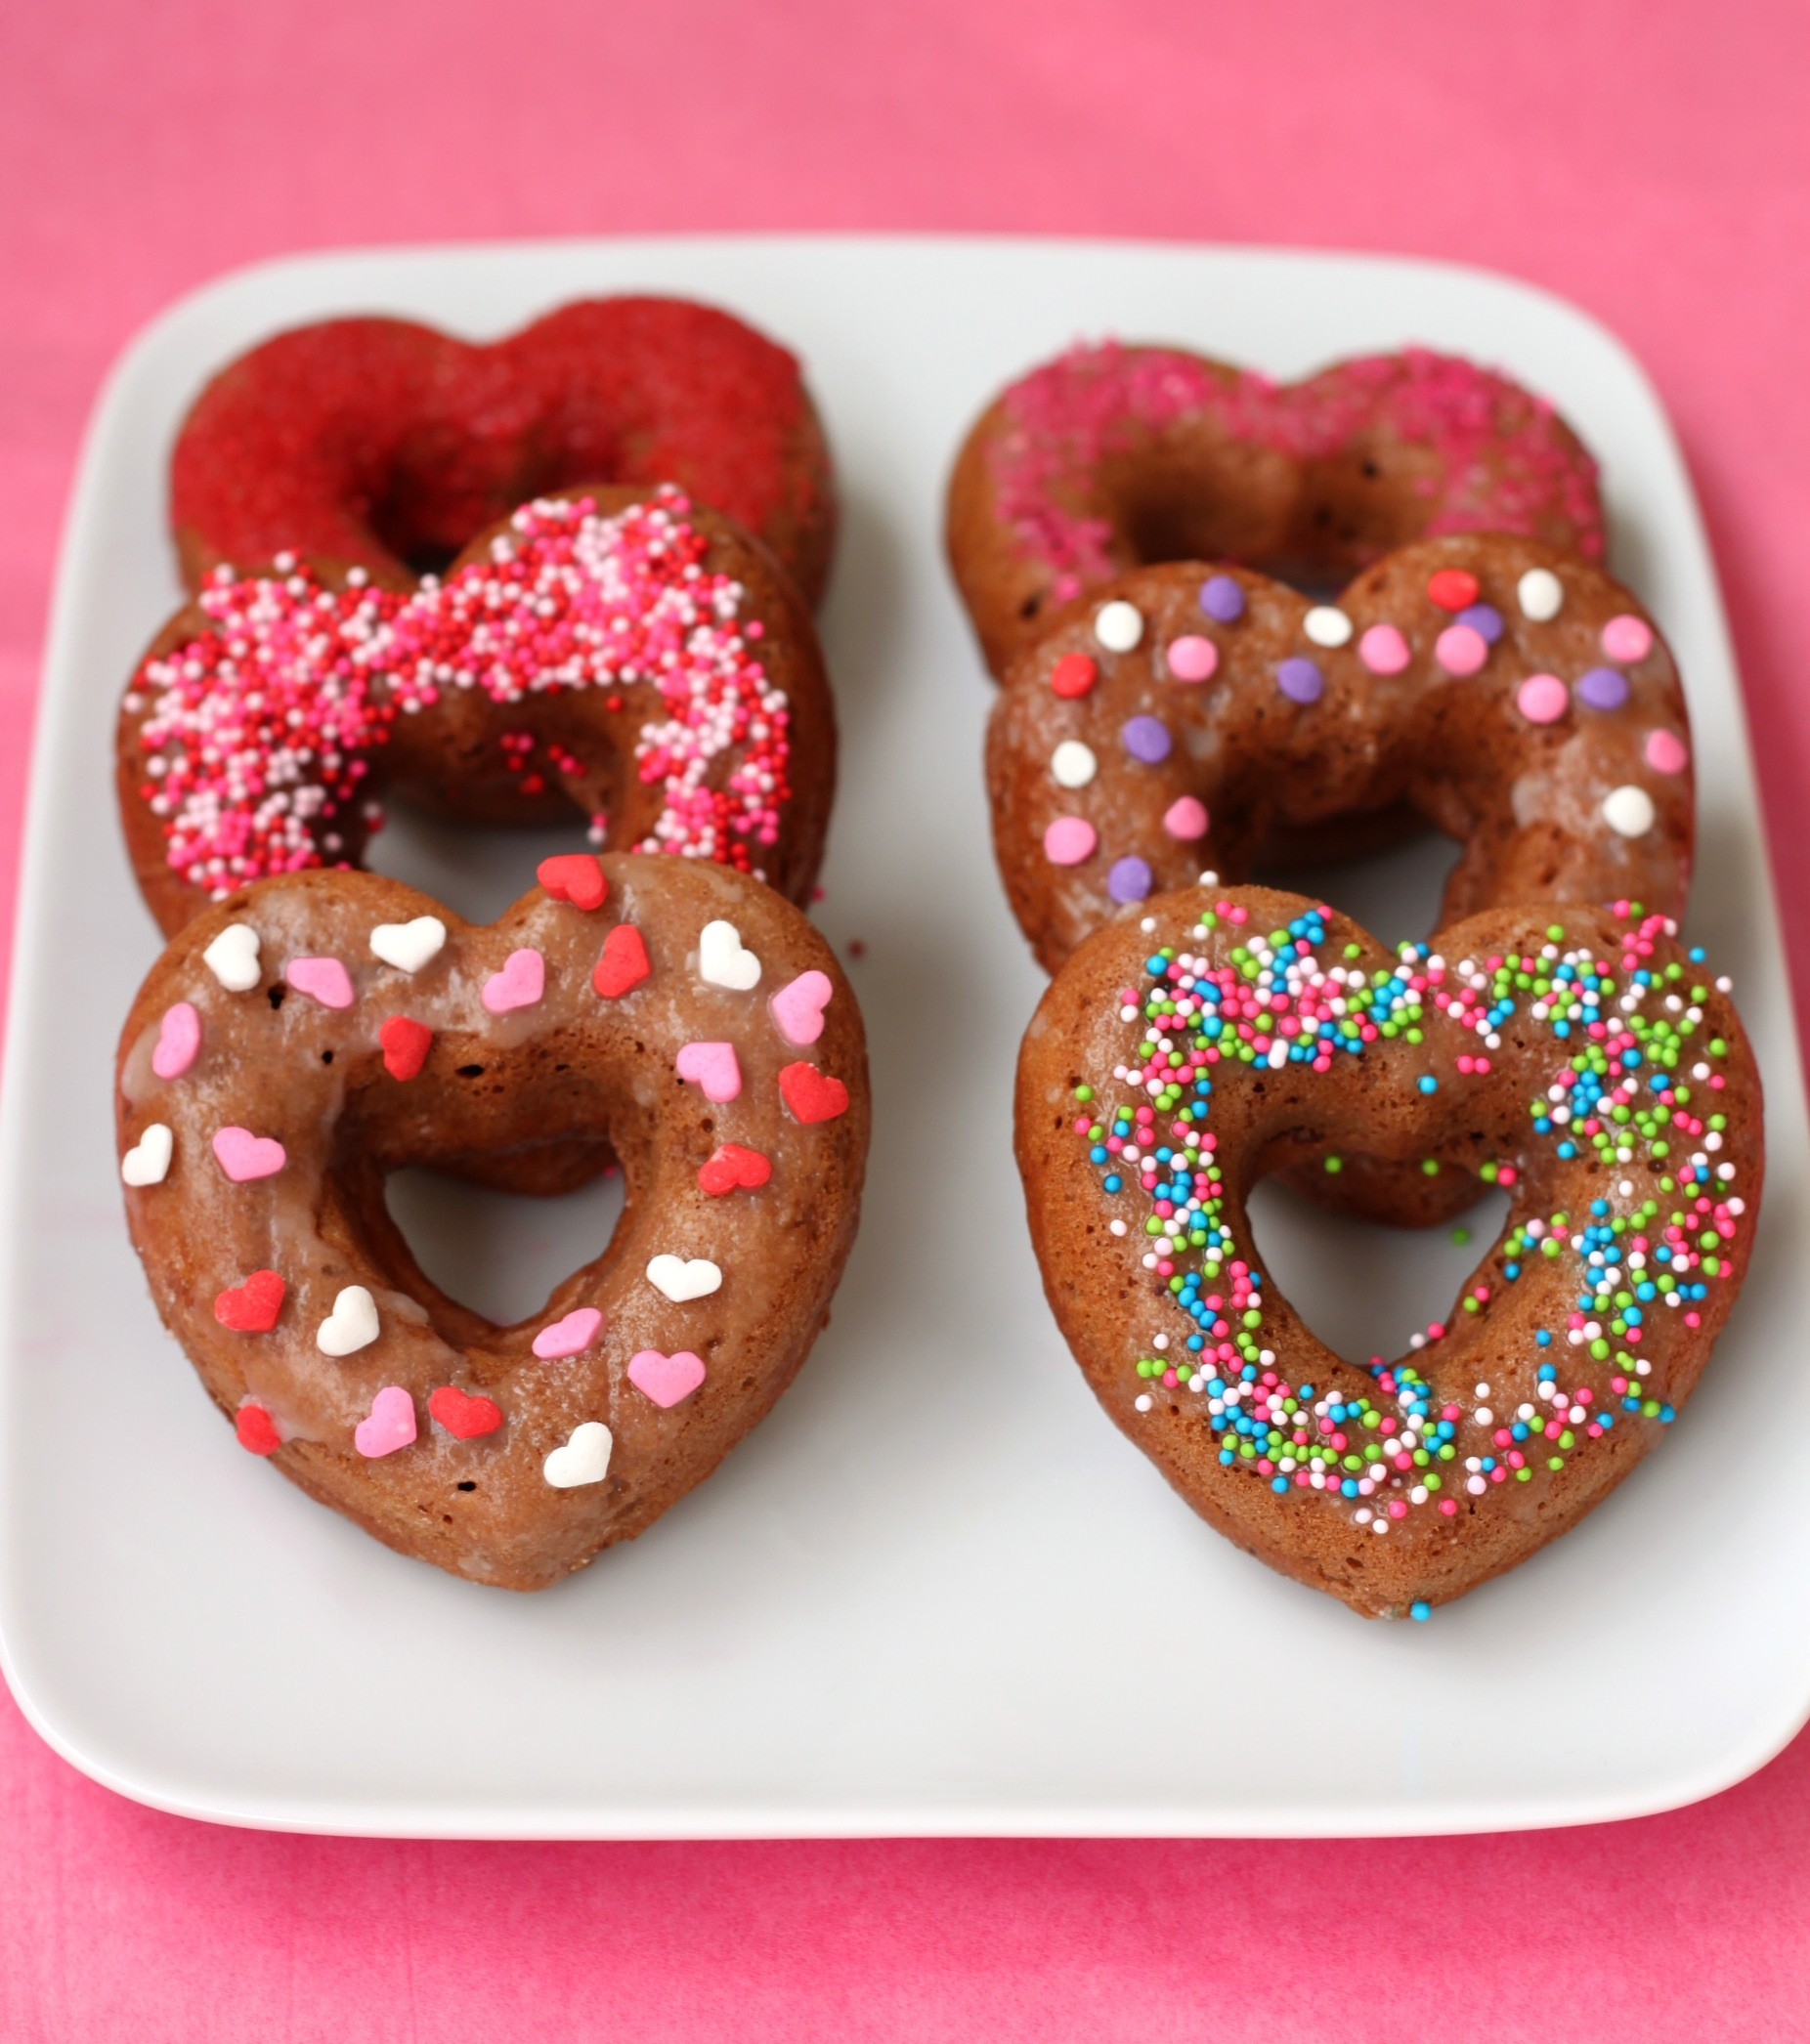 Heart healthy chocolate donut 6